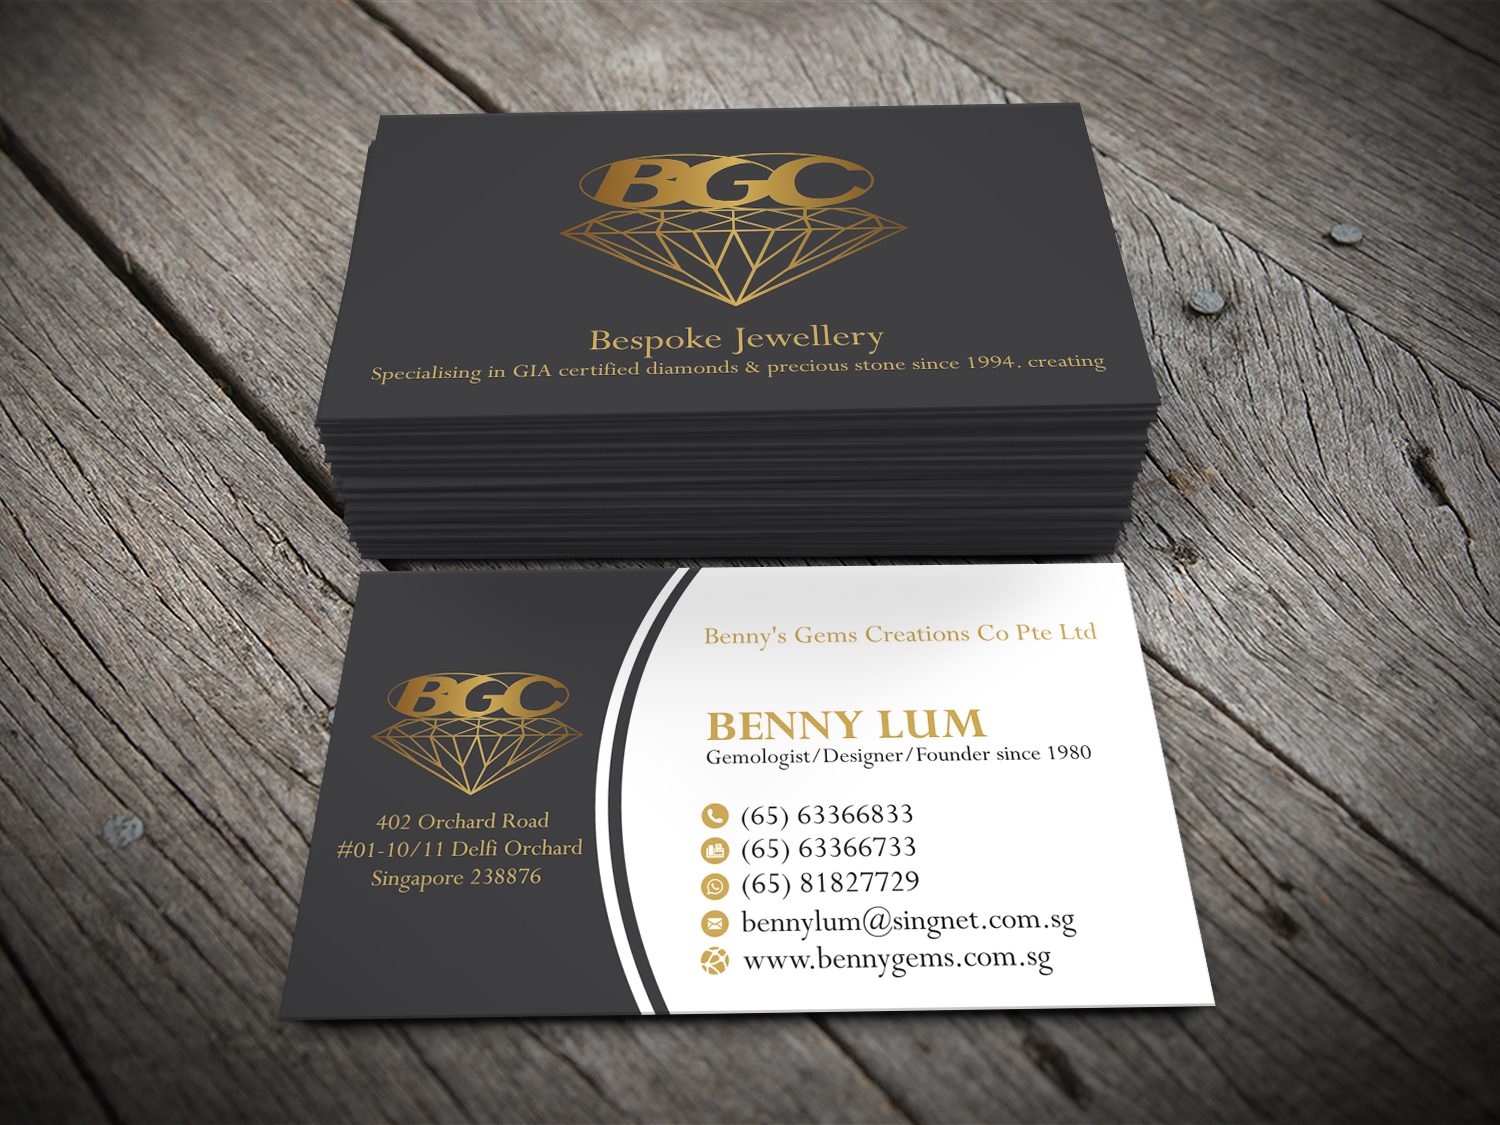 Professional upmarket jewelry store business card design for a business card design by alhemique1 for this project design 12678087 reheart Gallery